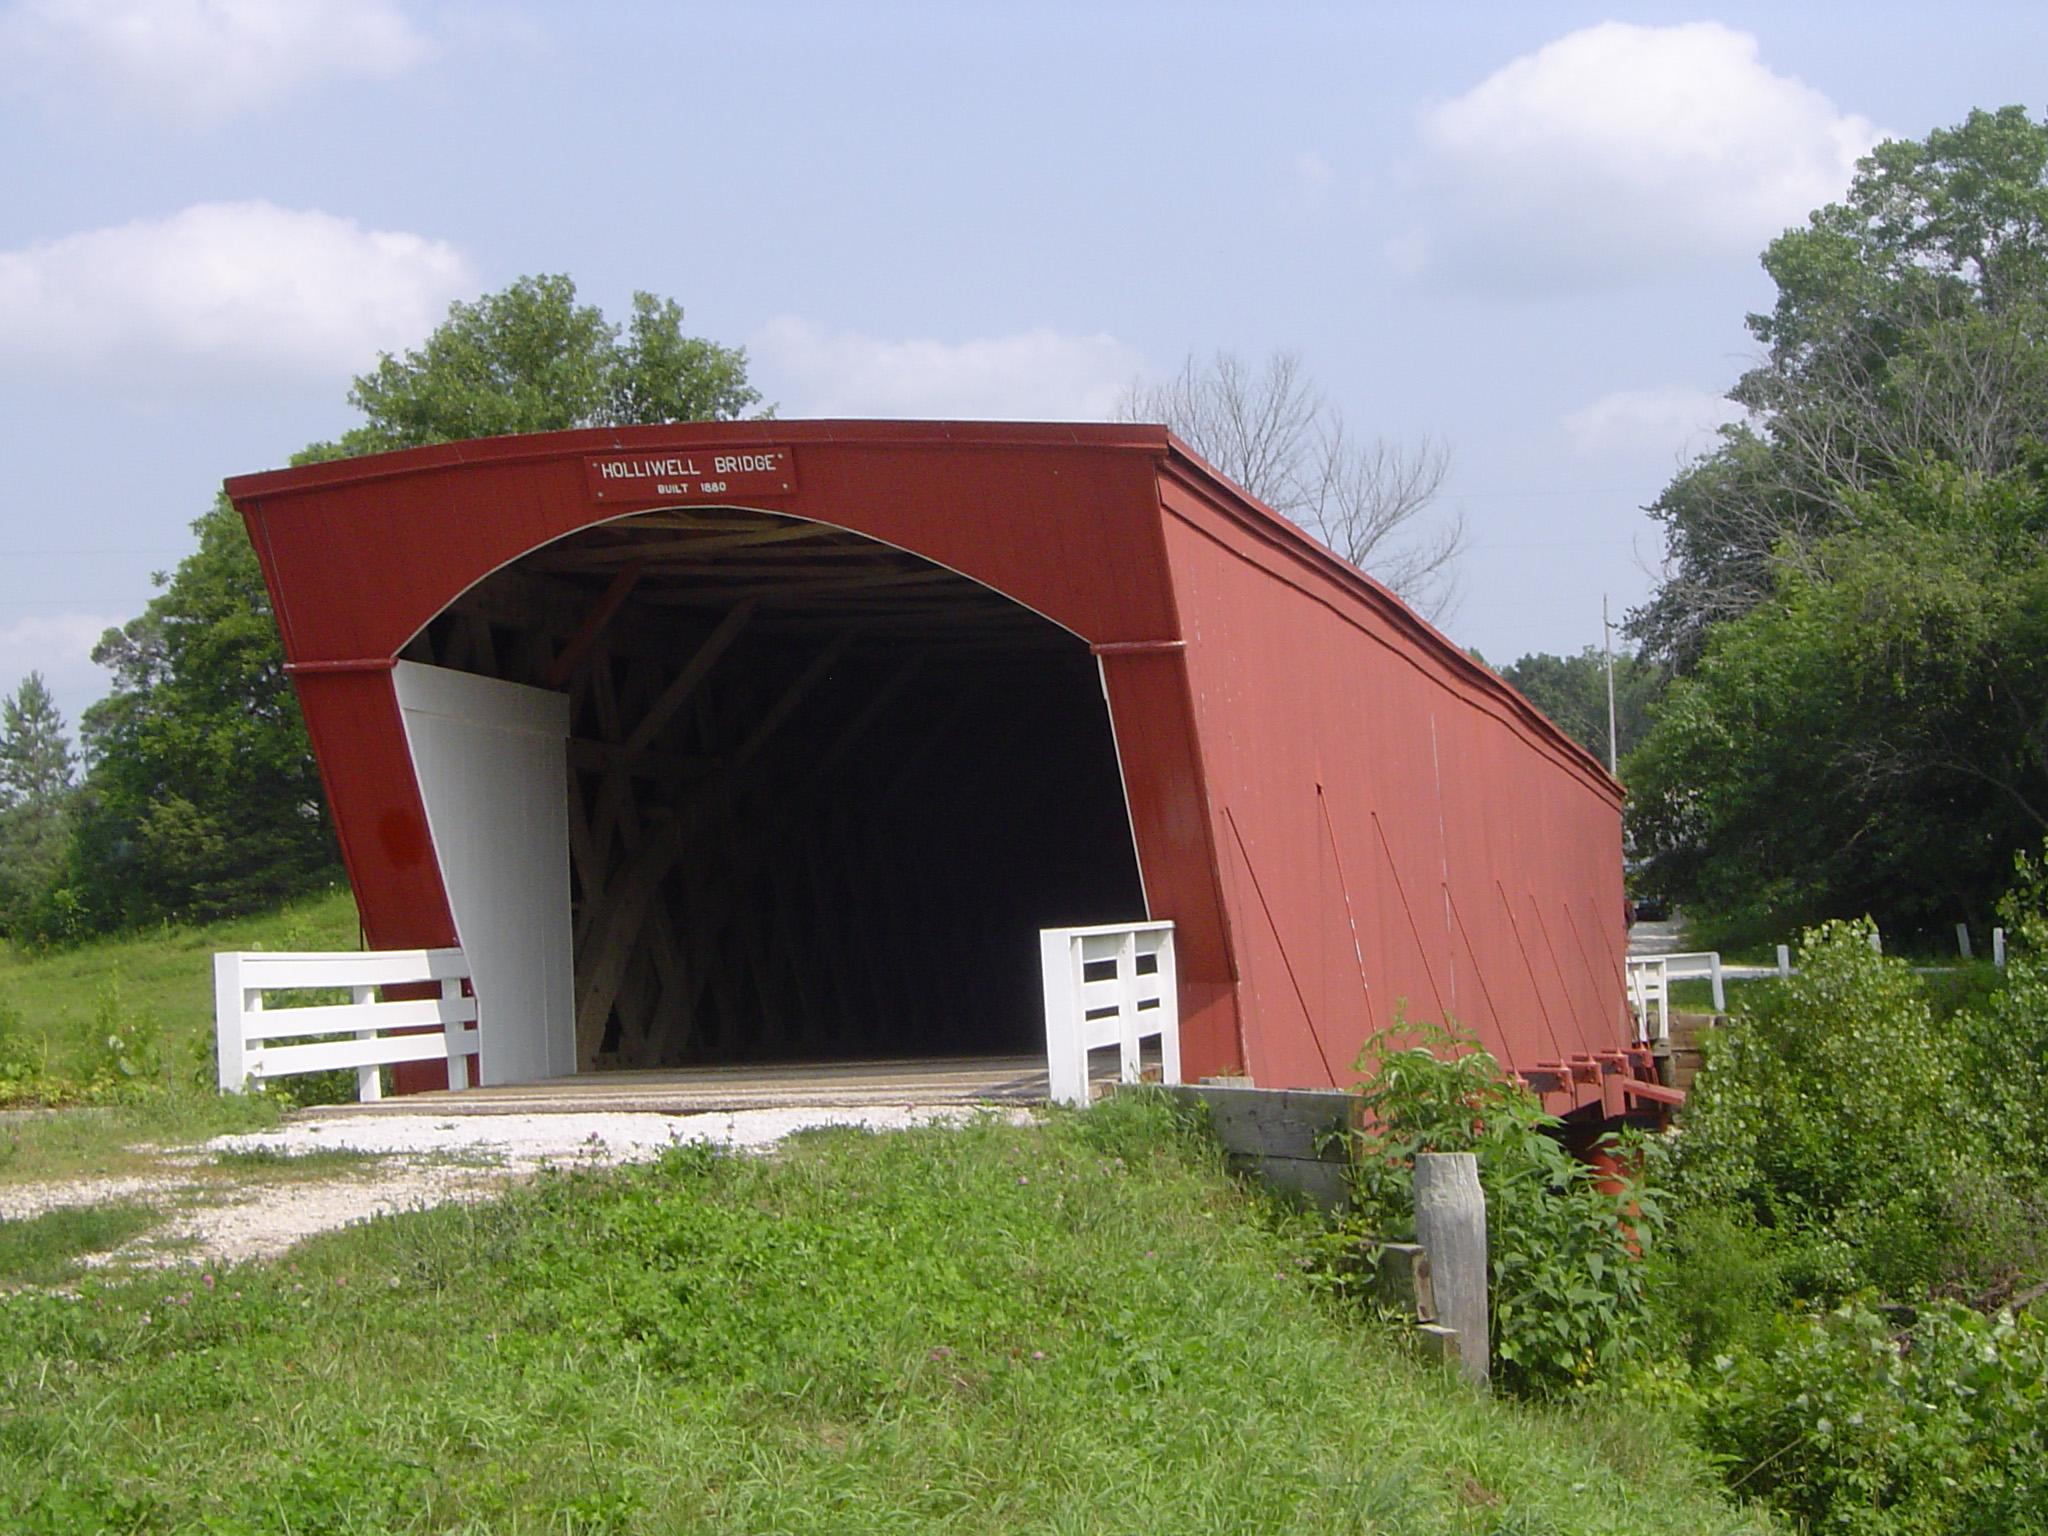 Close up Covered Bridge Surrounded by Green Grasses and Tall Trees on Lighter Blue Sky Background.